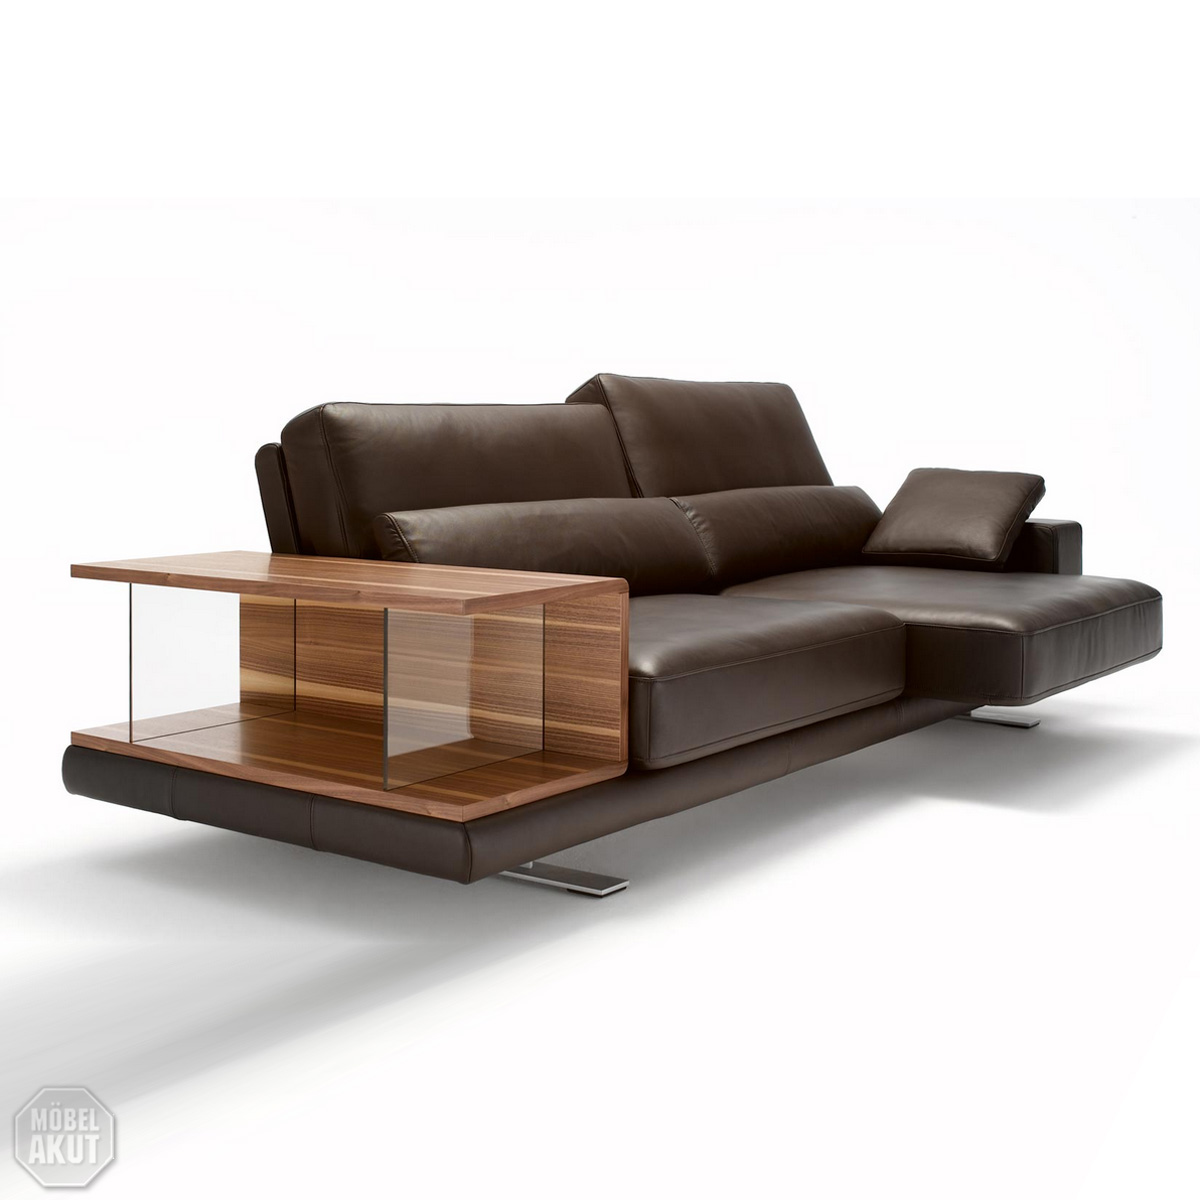 sofabank vero 556 rolf benz sofa funktionssofa leder dunkelbraun ebay. Black Bedroom Furniture Sets. Home Design Ideas